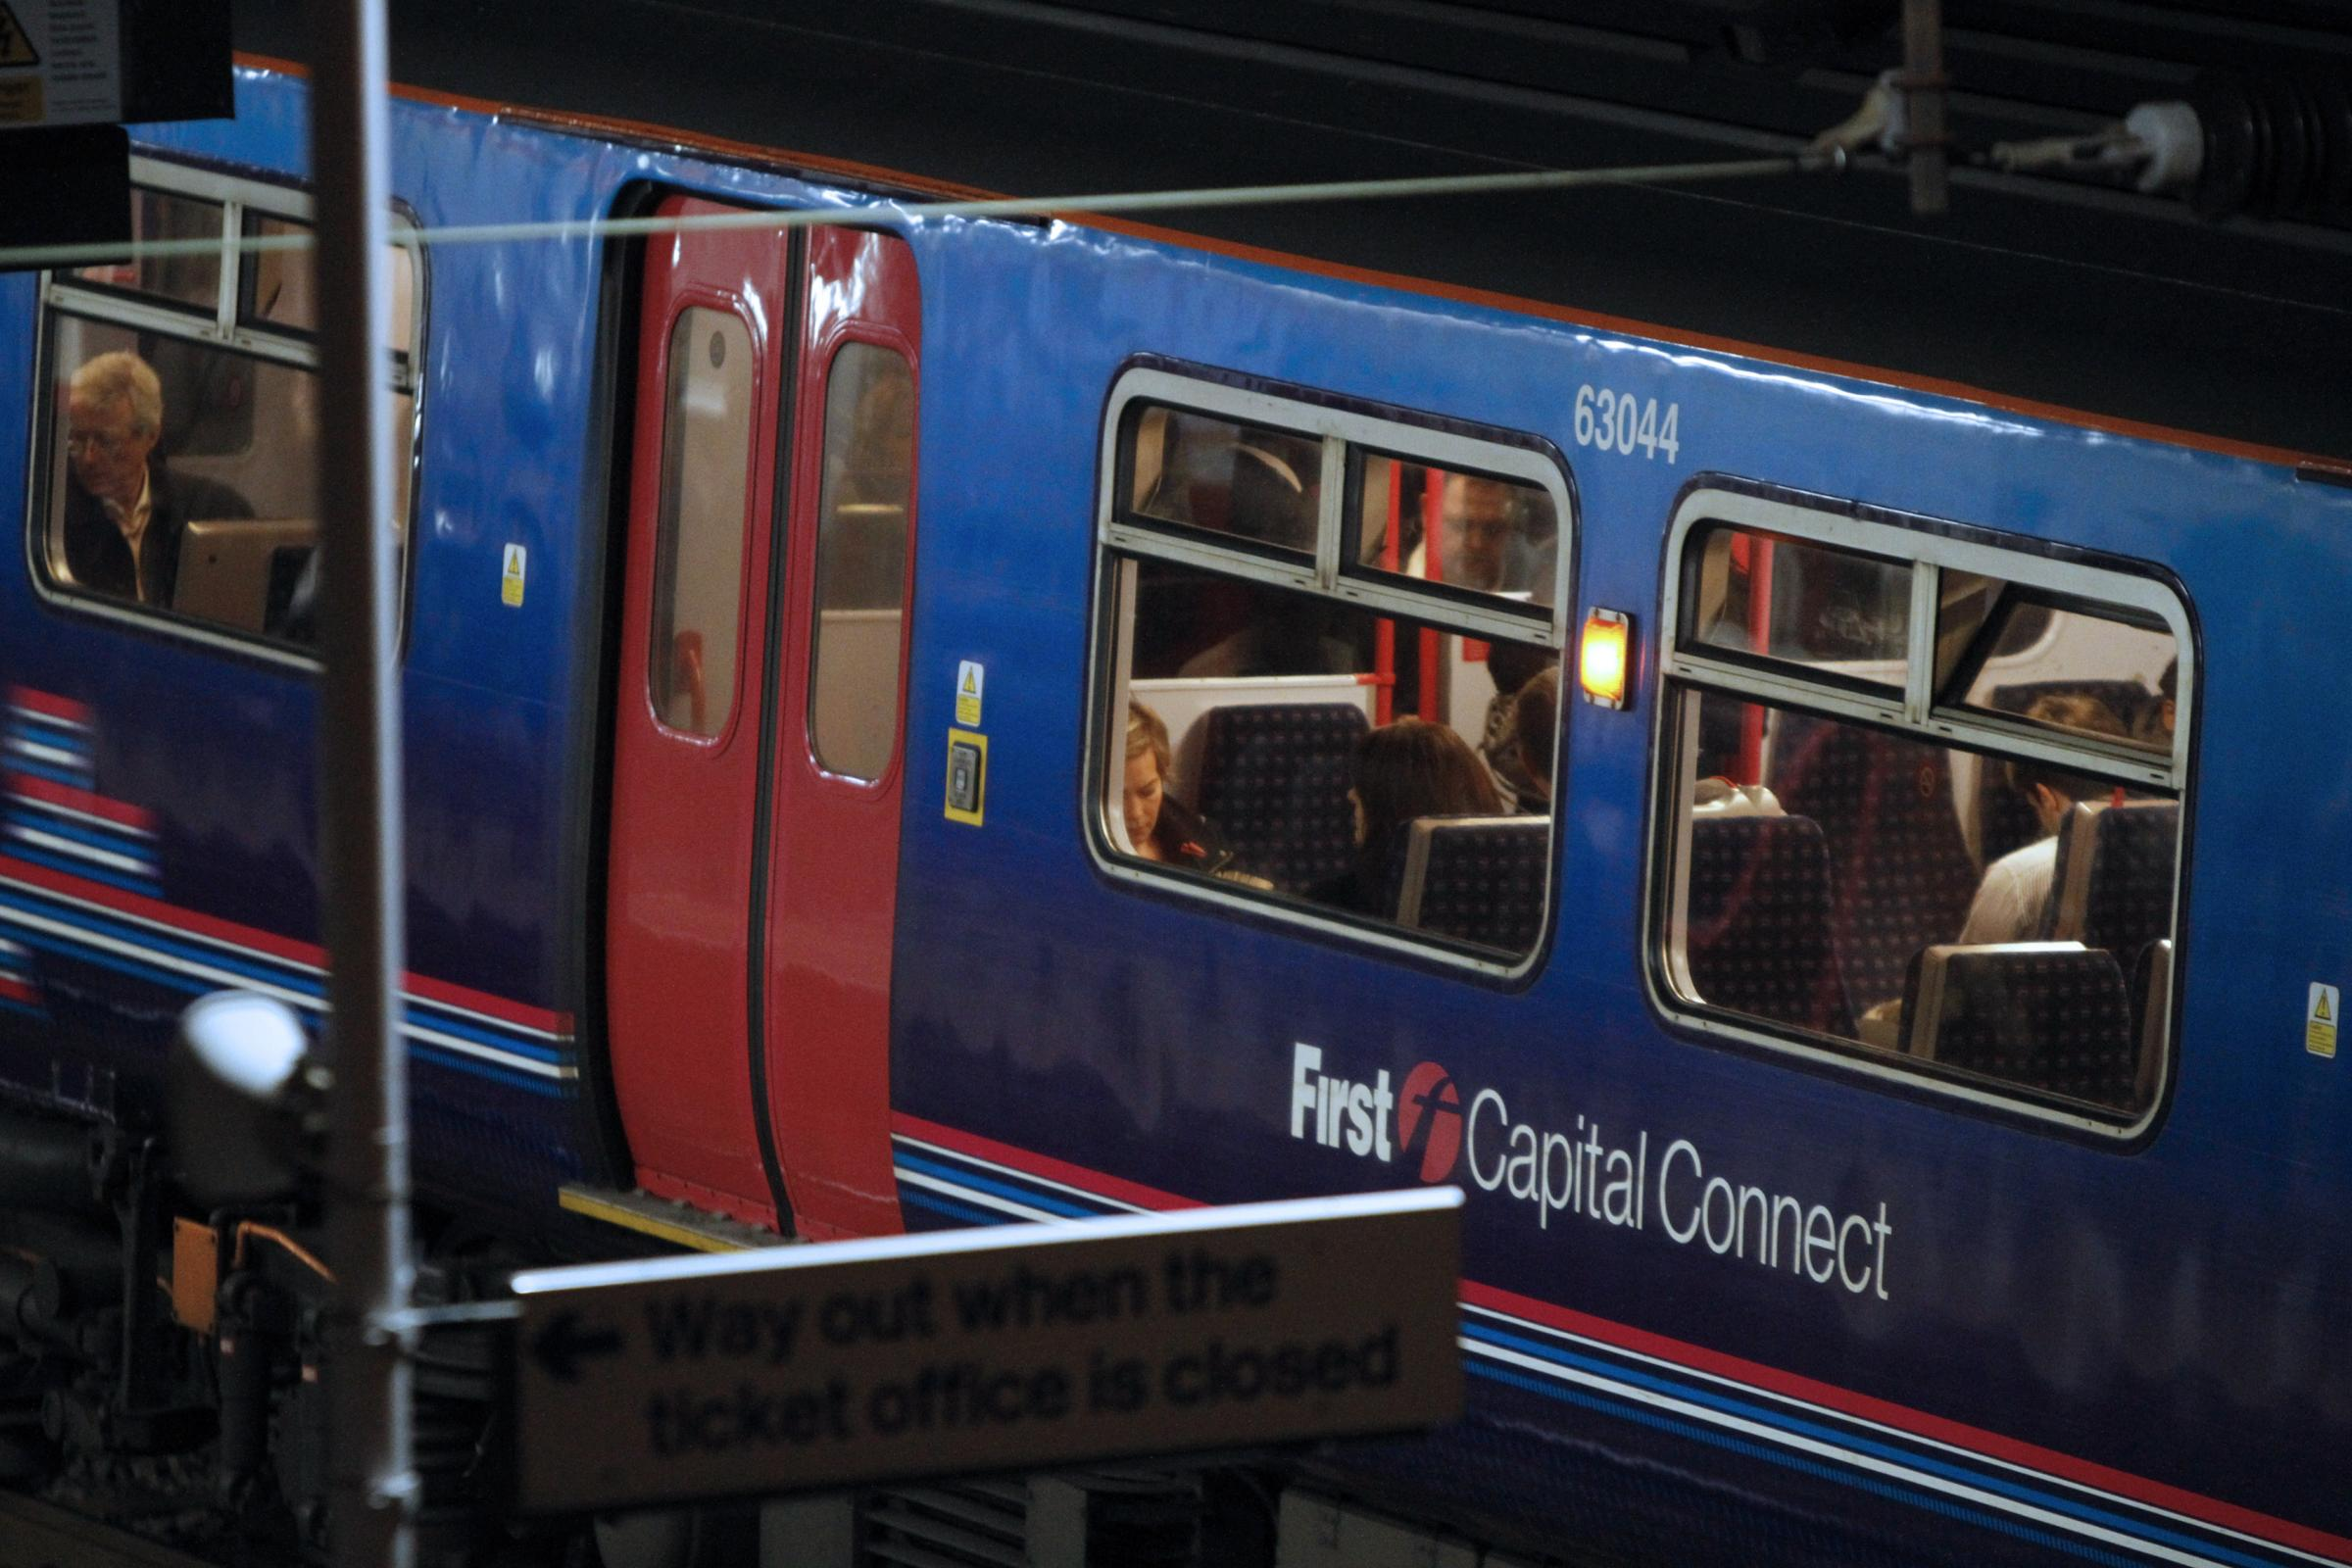 First Capital Connect loses Thameslink rail franchise